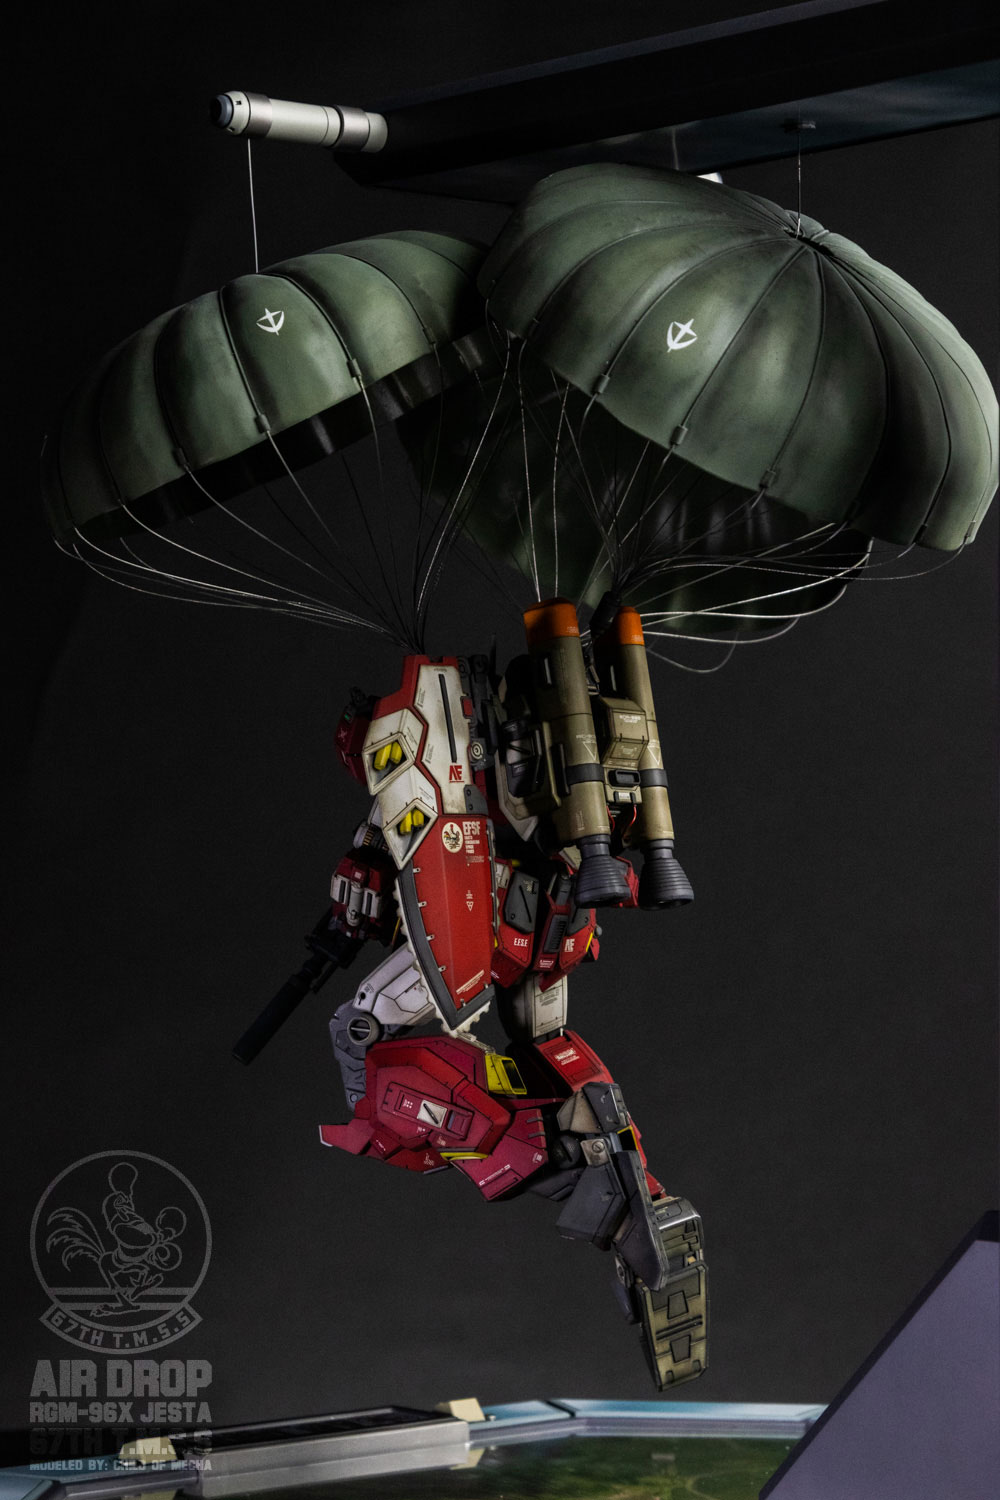 Air Drop - Jesta - 178.jpg